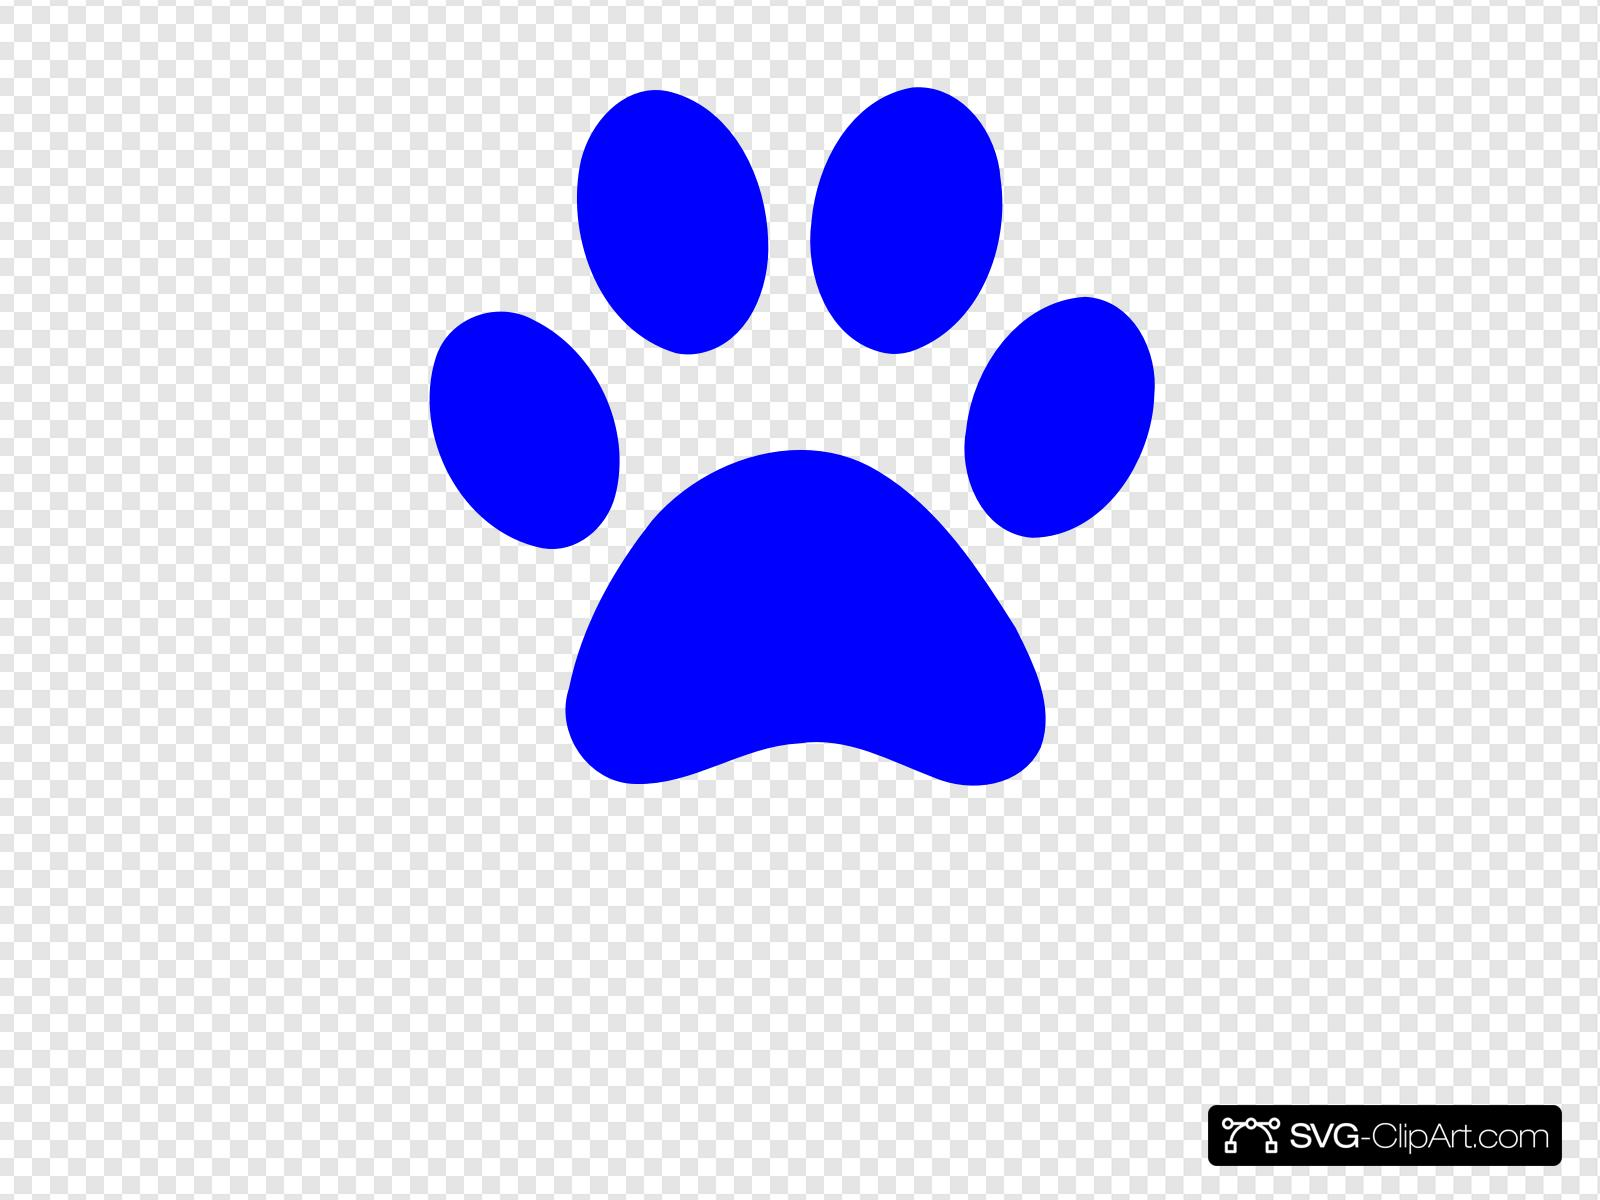 Panther Paw Print Clip art, Icon and SVG.